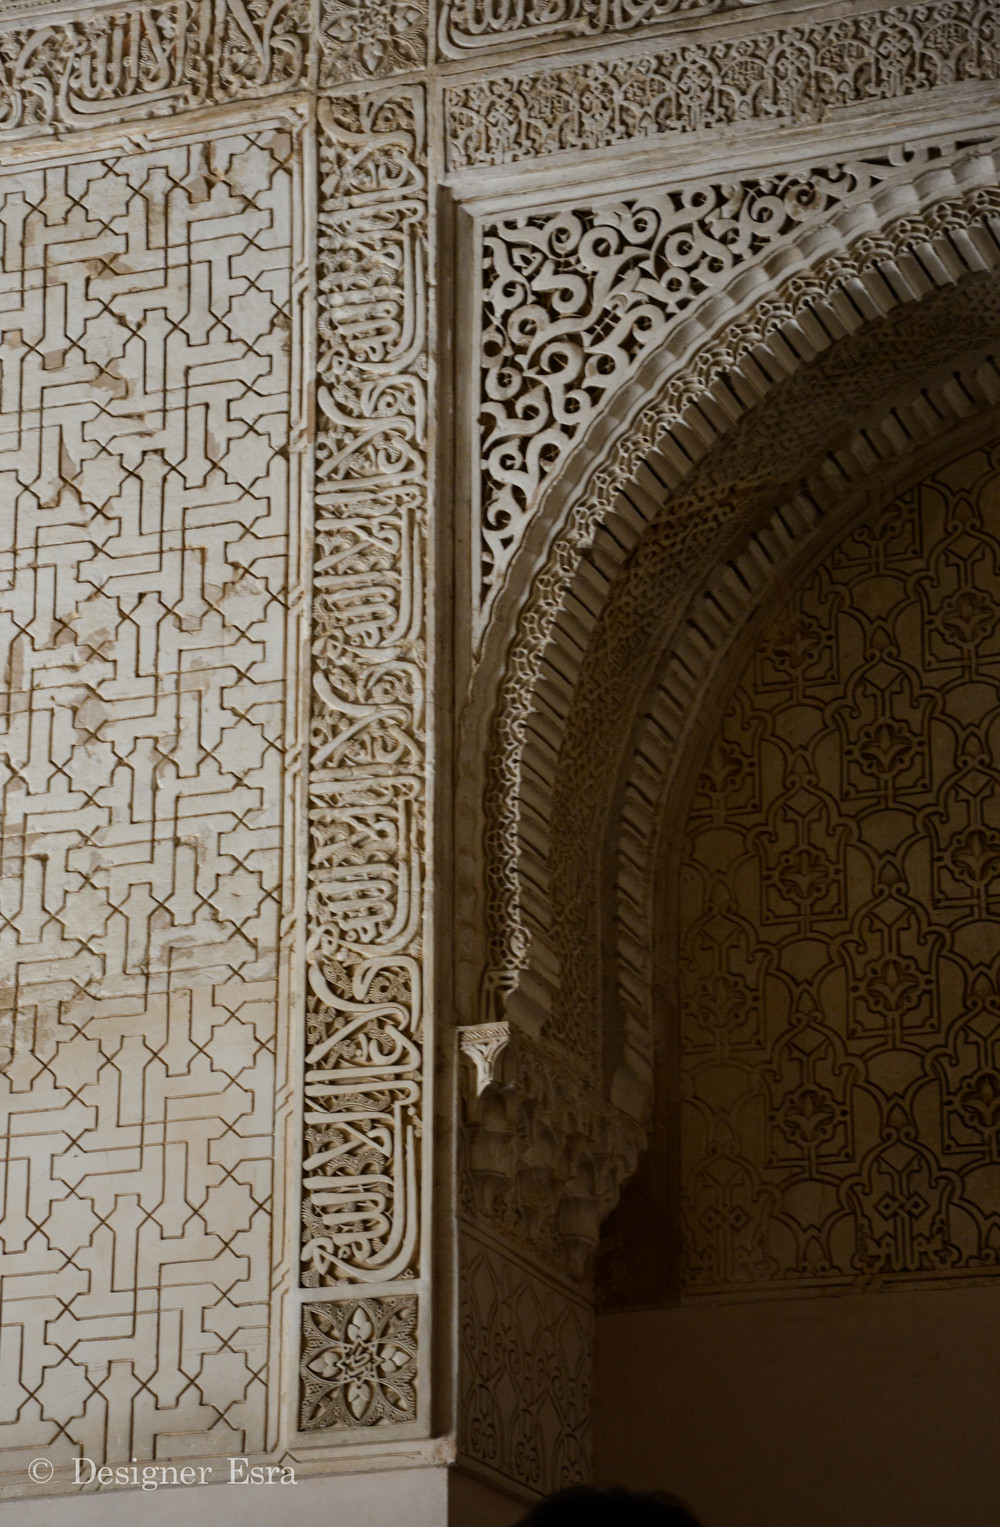 Islamic Geometric Patterns in Spain